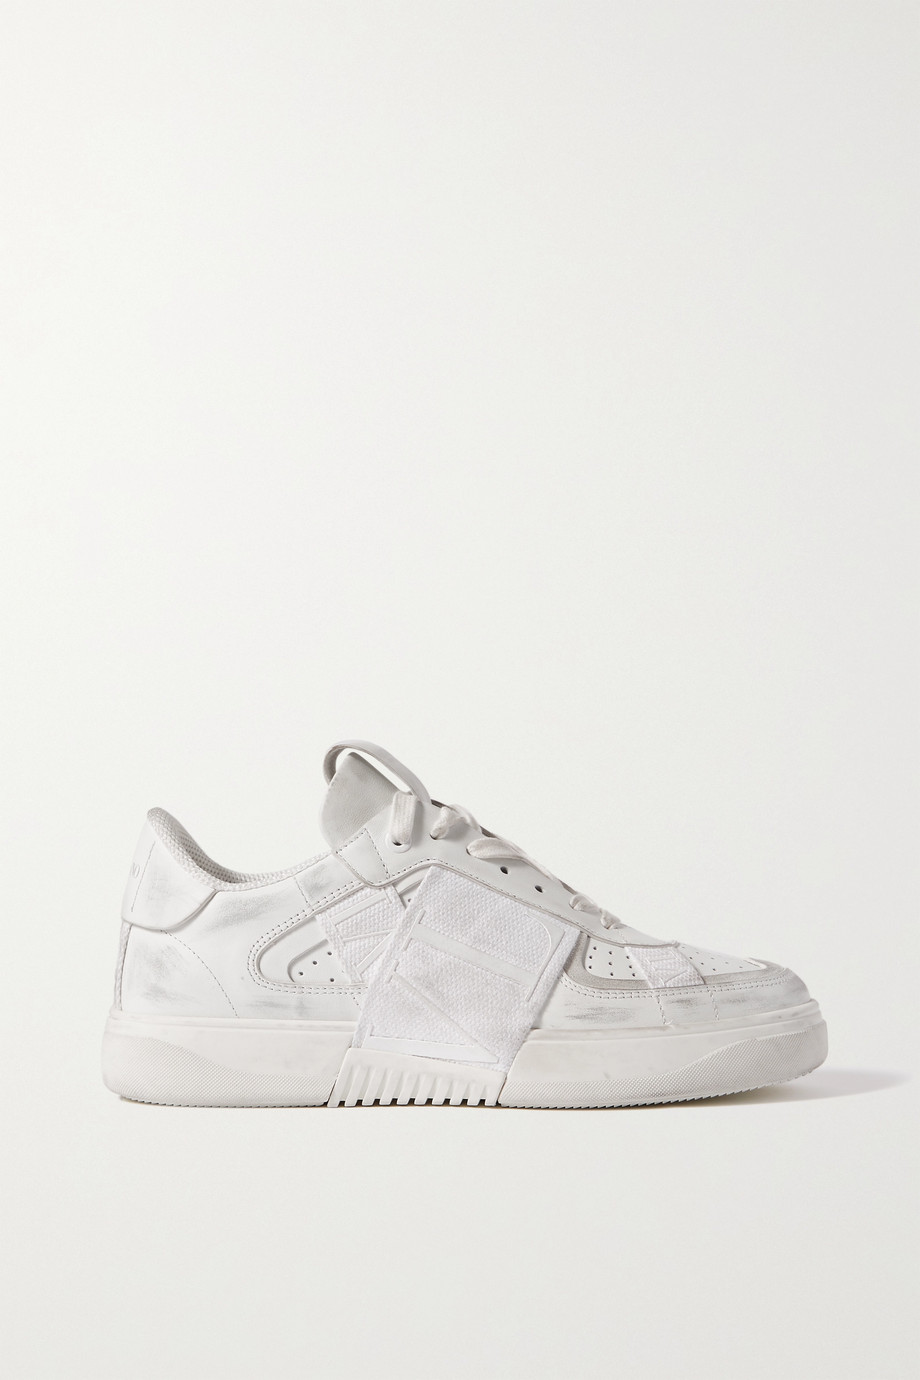 VALENTINO Valentino Garavani VLTN distressed leather, suede and canvas sneakers